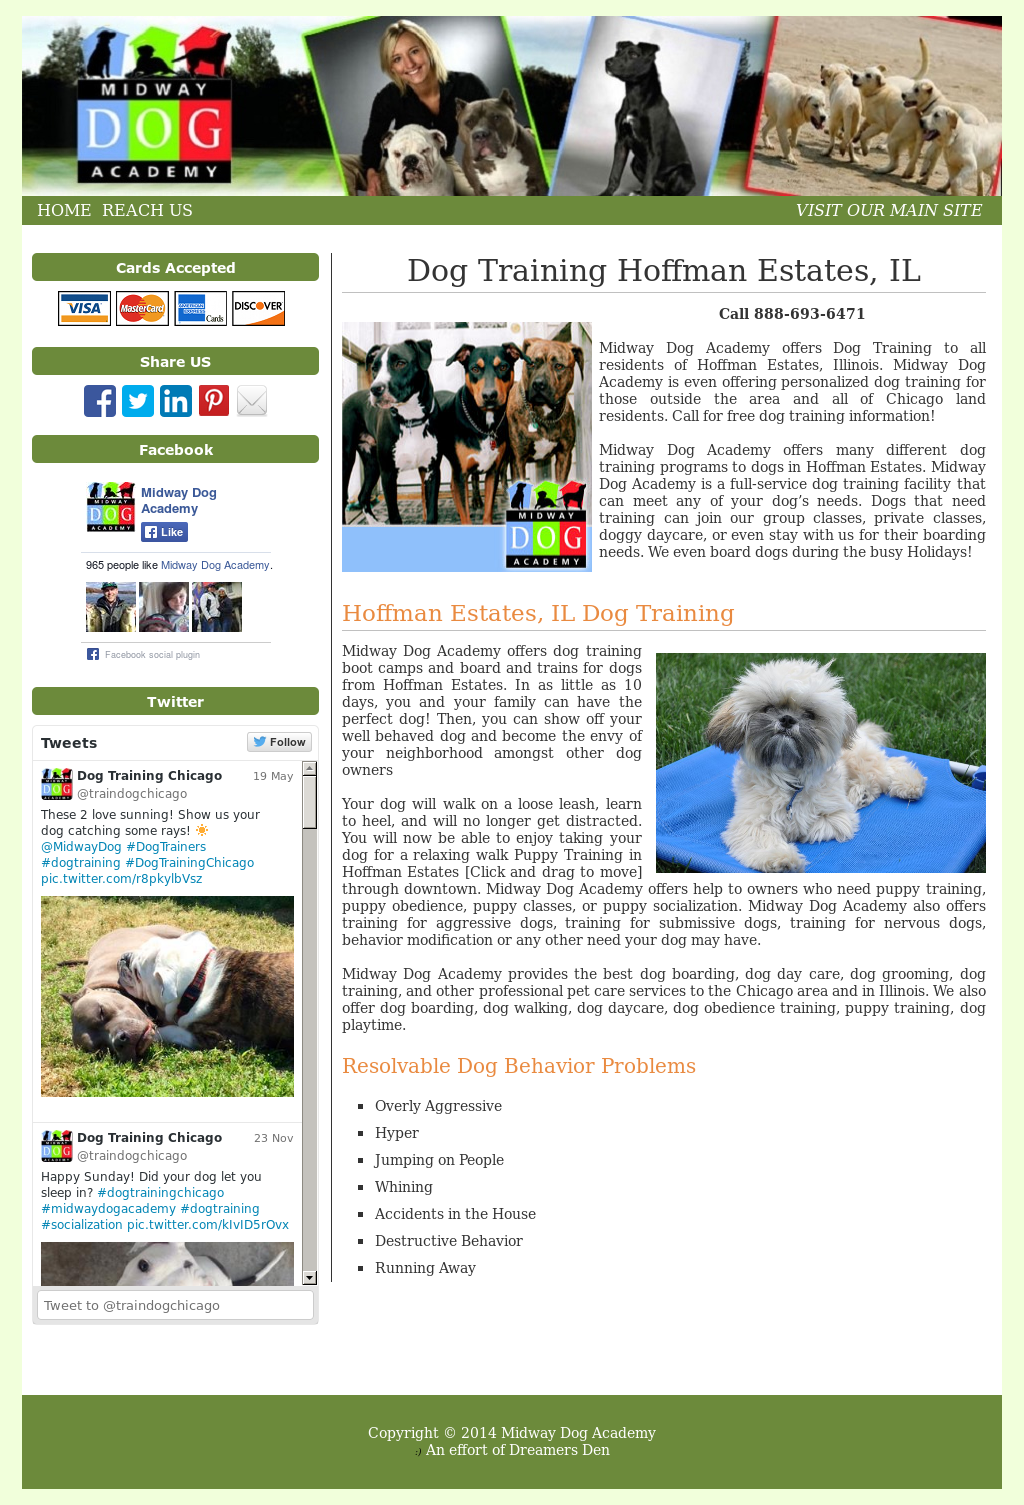 Dogtraininghoffmanestates Competitors, Revenue and Employees - Owler